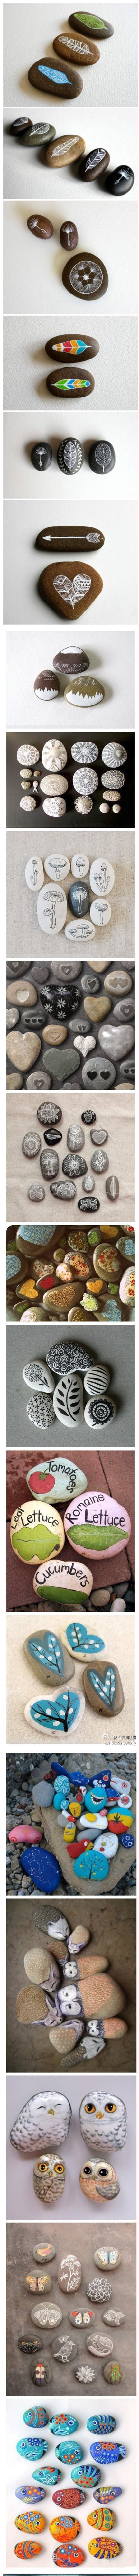 Painted Stones Paper Weights & Other Such Creations, mod podge, recipe, glue, art markers, herb markers, rocks, stones, pebbles, paper weights, creative art, stone fish, stone pets, stone family, rock art. decorative rocks,